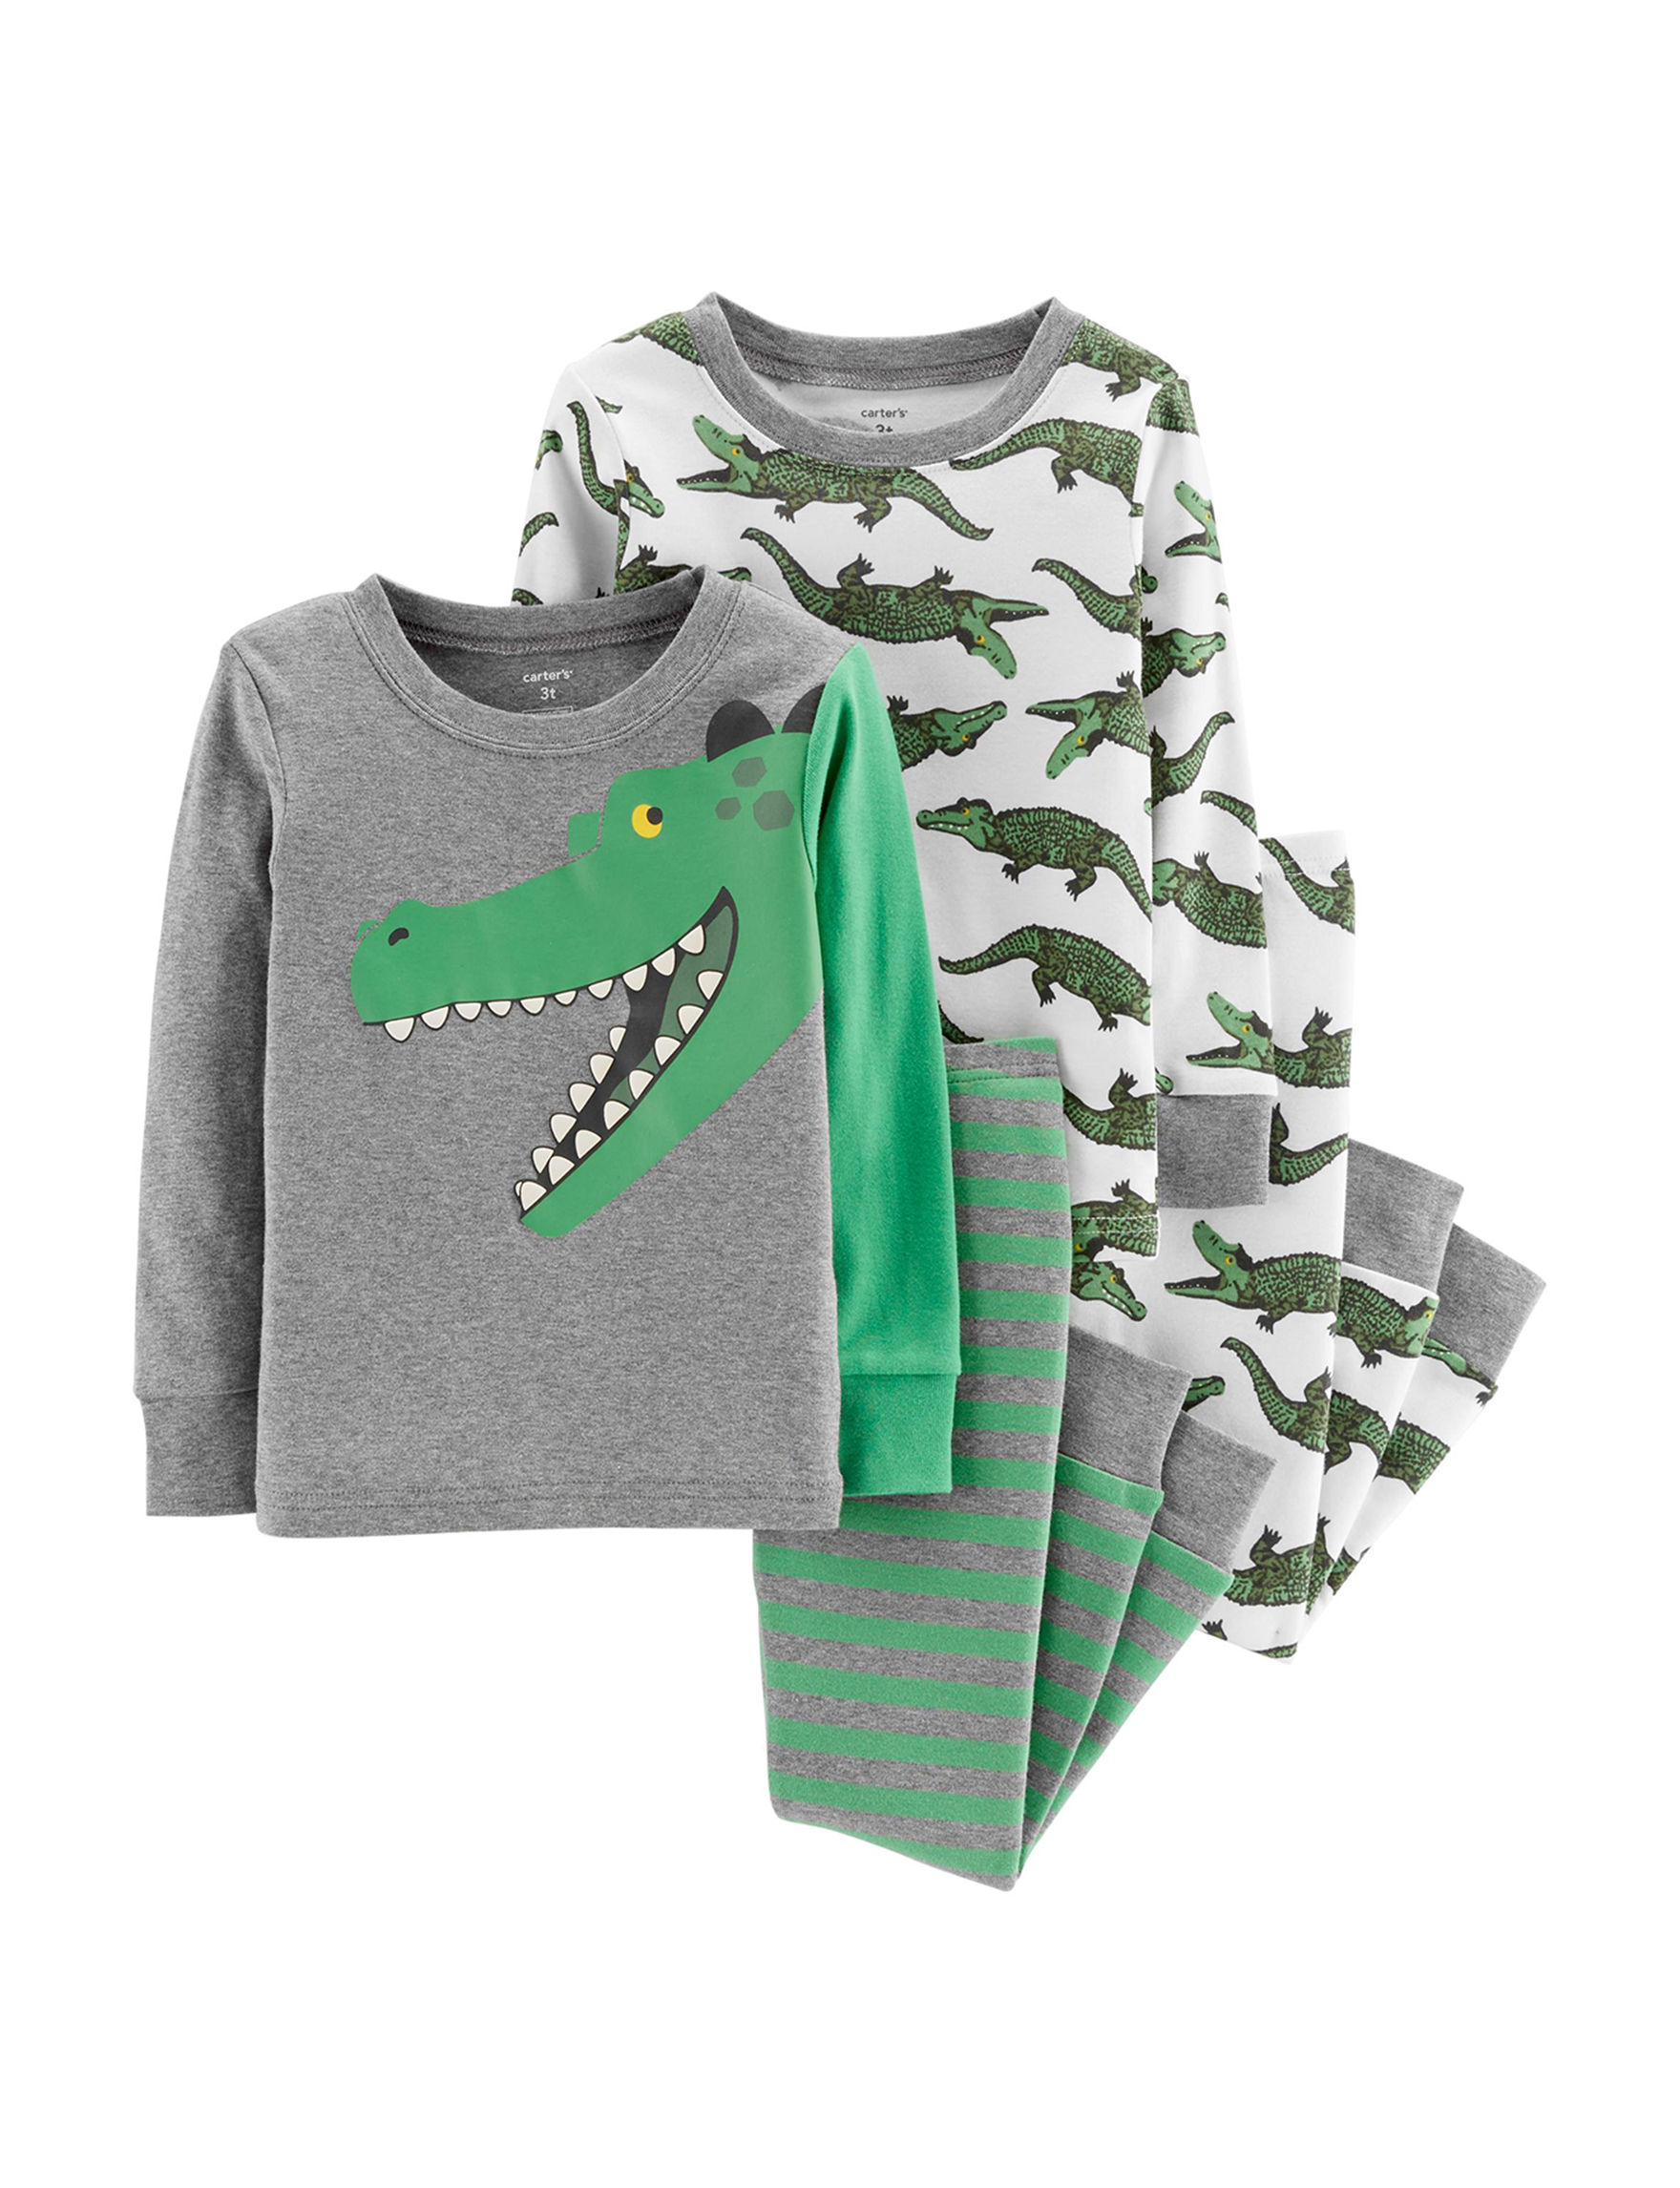 Carter's Green / Grey Pajama Sets